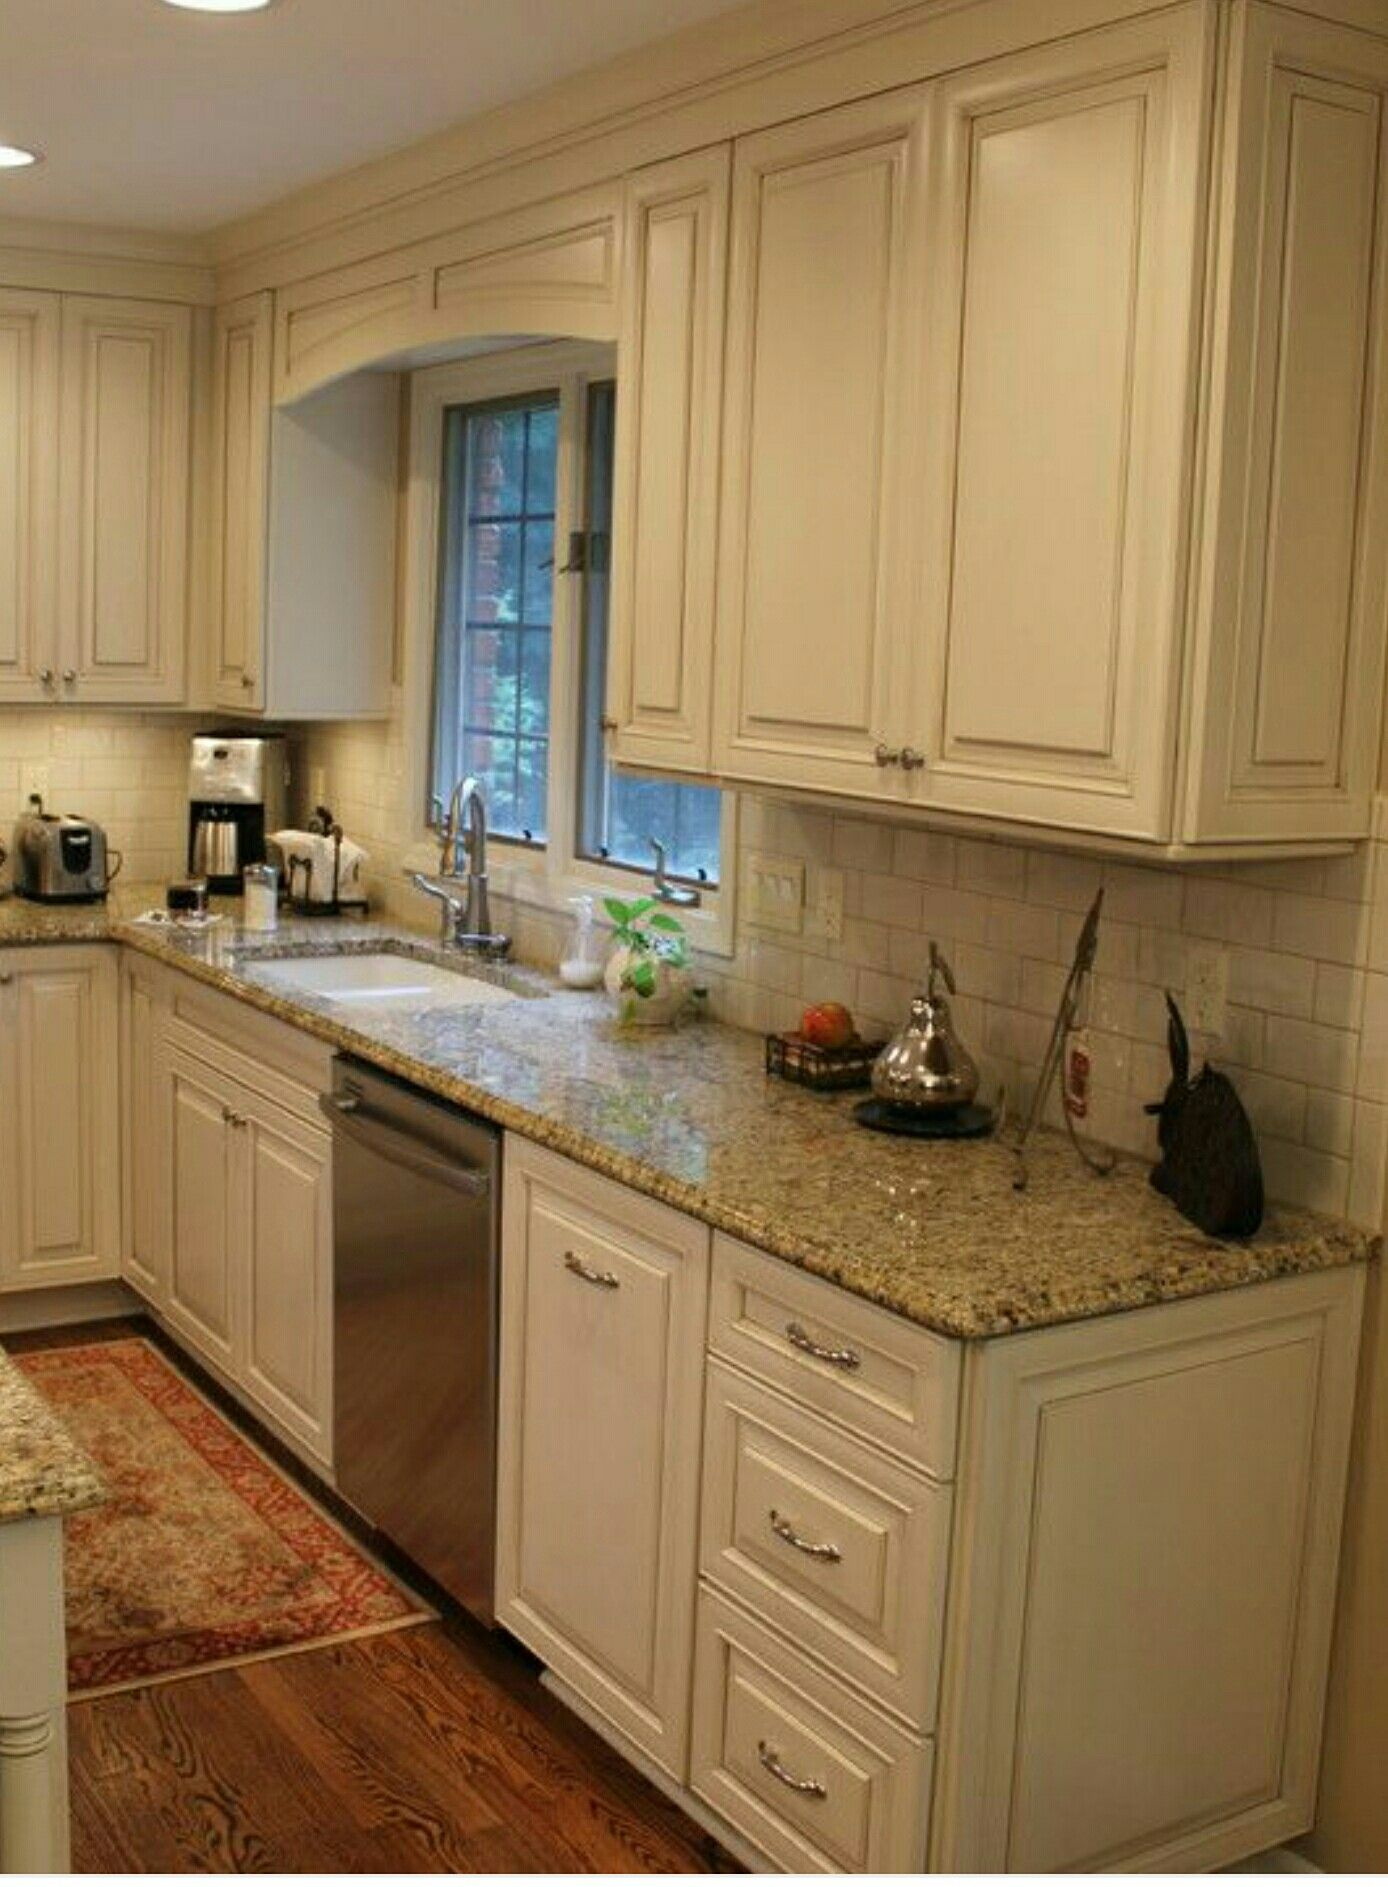 White cabinets subway tile beige granite countertops for White cabinets granite countertops